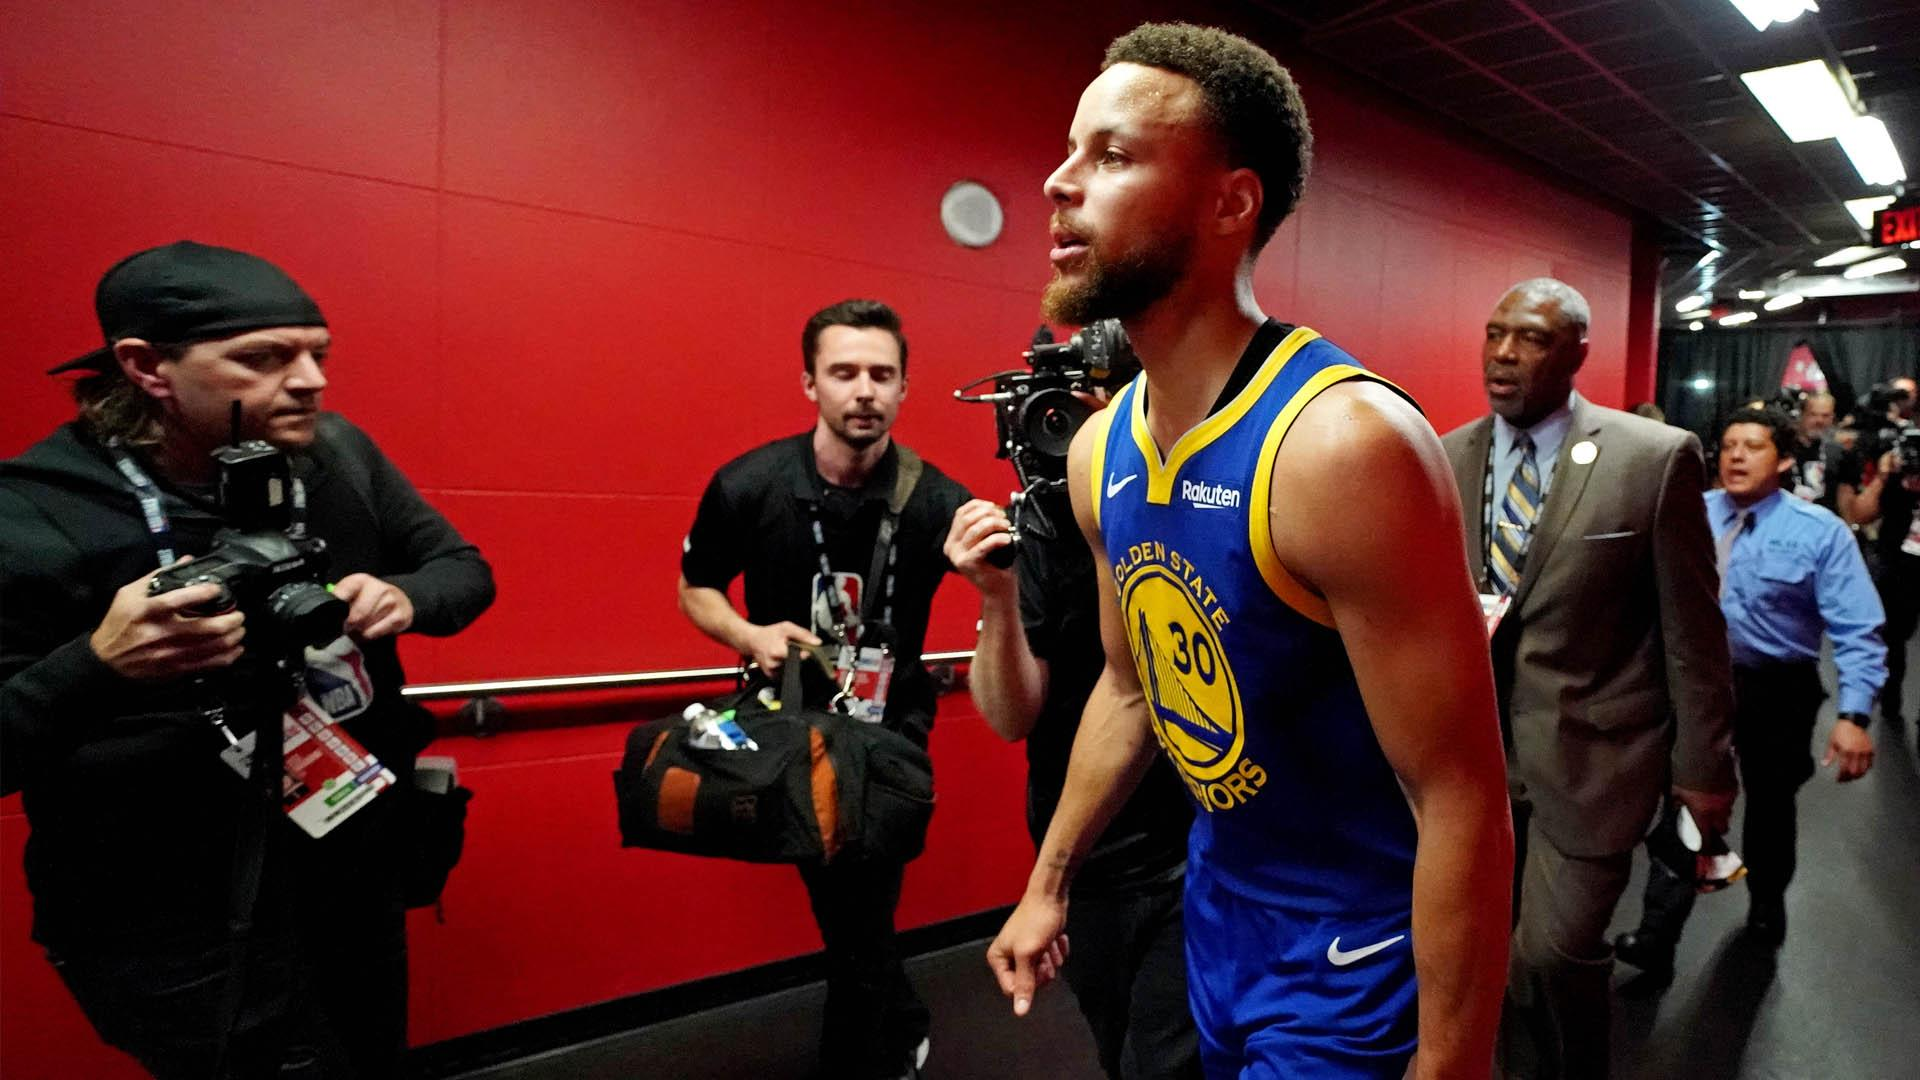 Steph Curry defended by Chris Broussard during epic NBA Finals rant